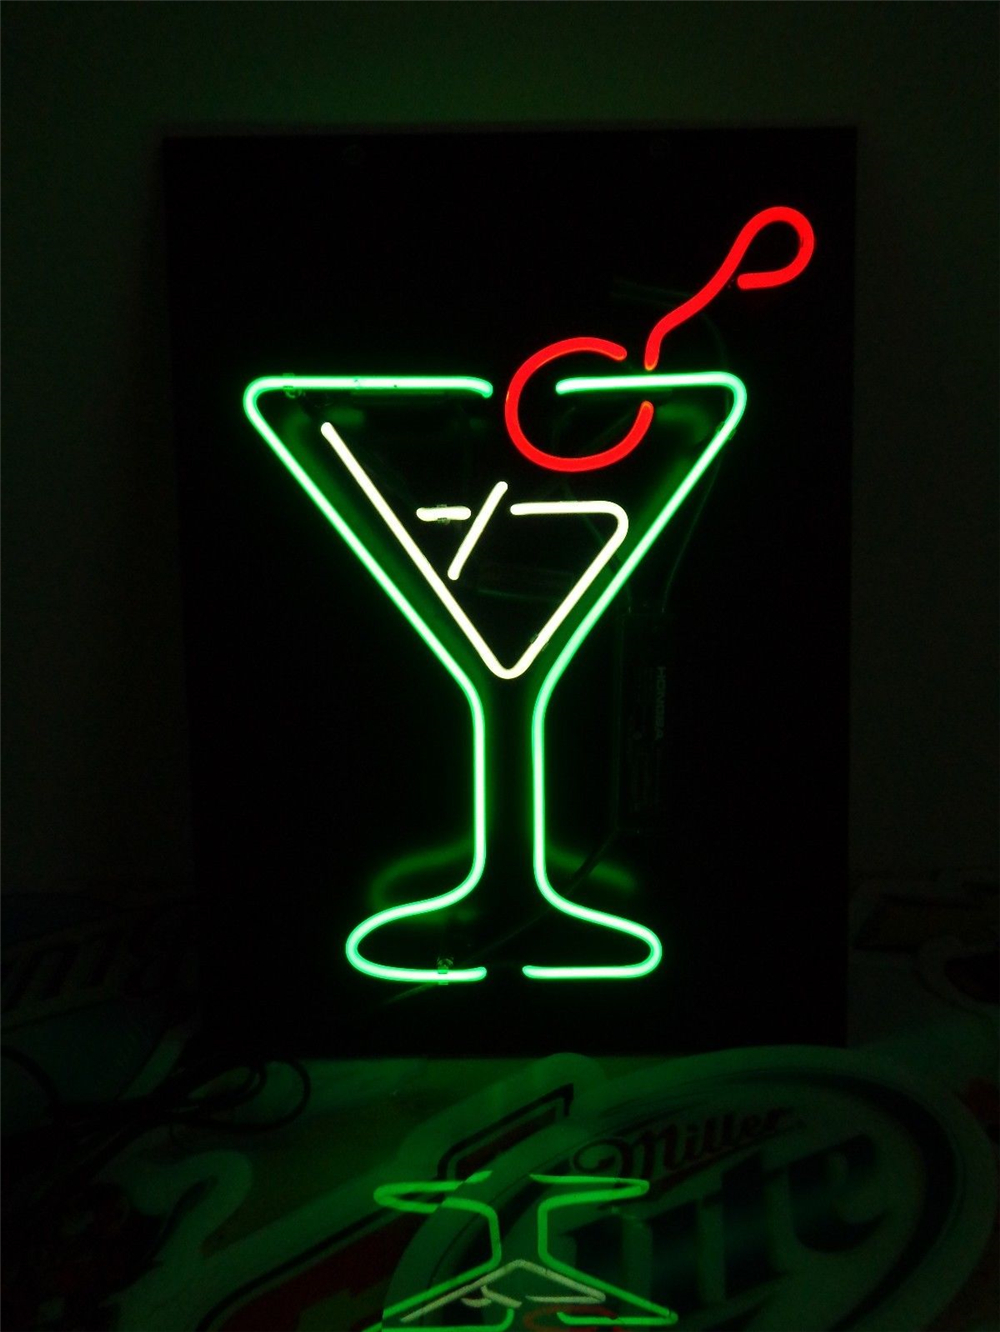 2/' Lighted liquor bottle display shot glass display GARAGE bar sign  LED